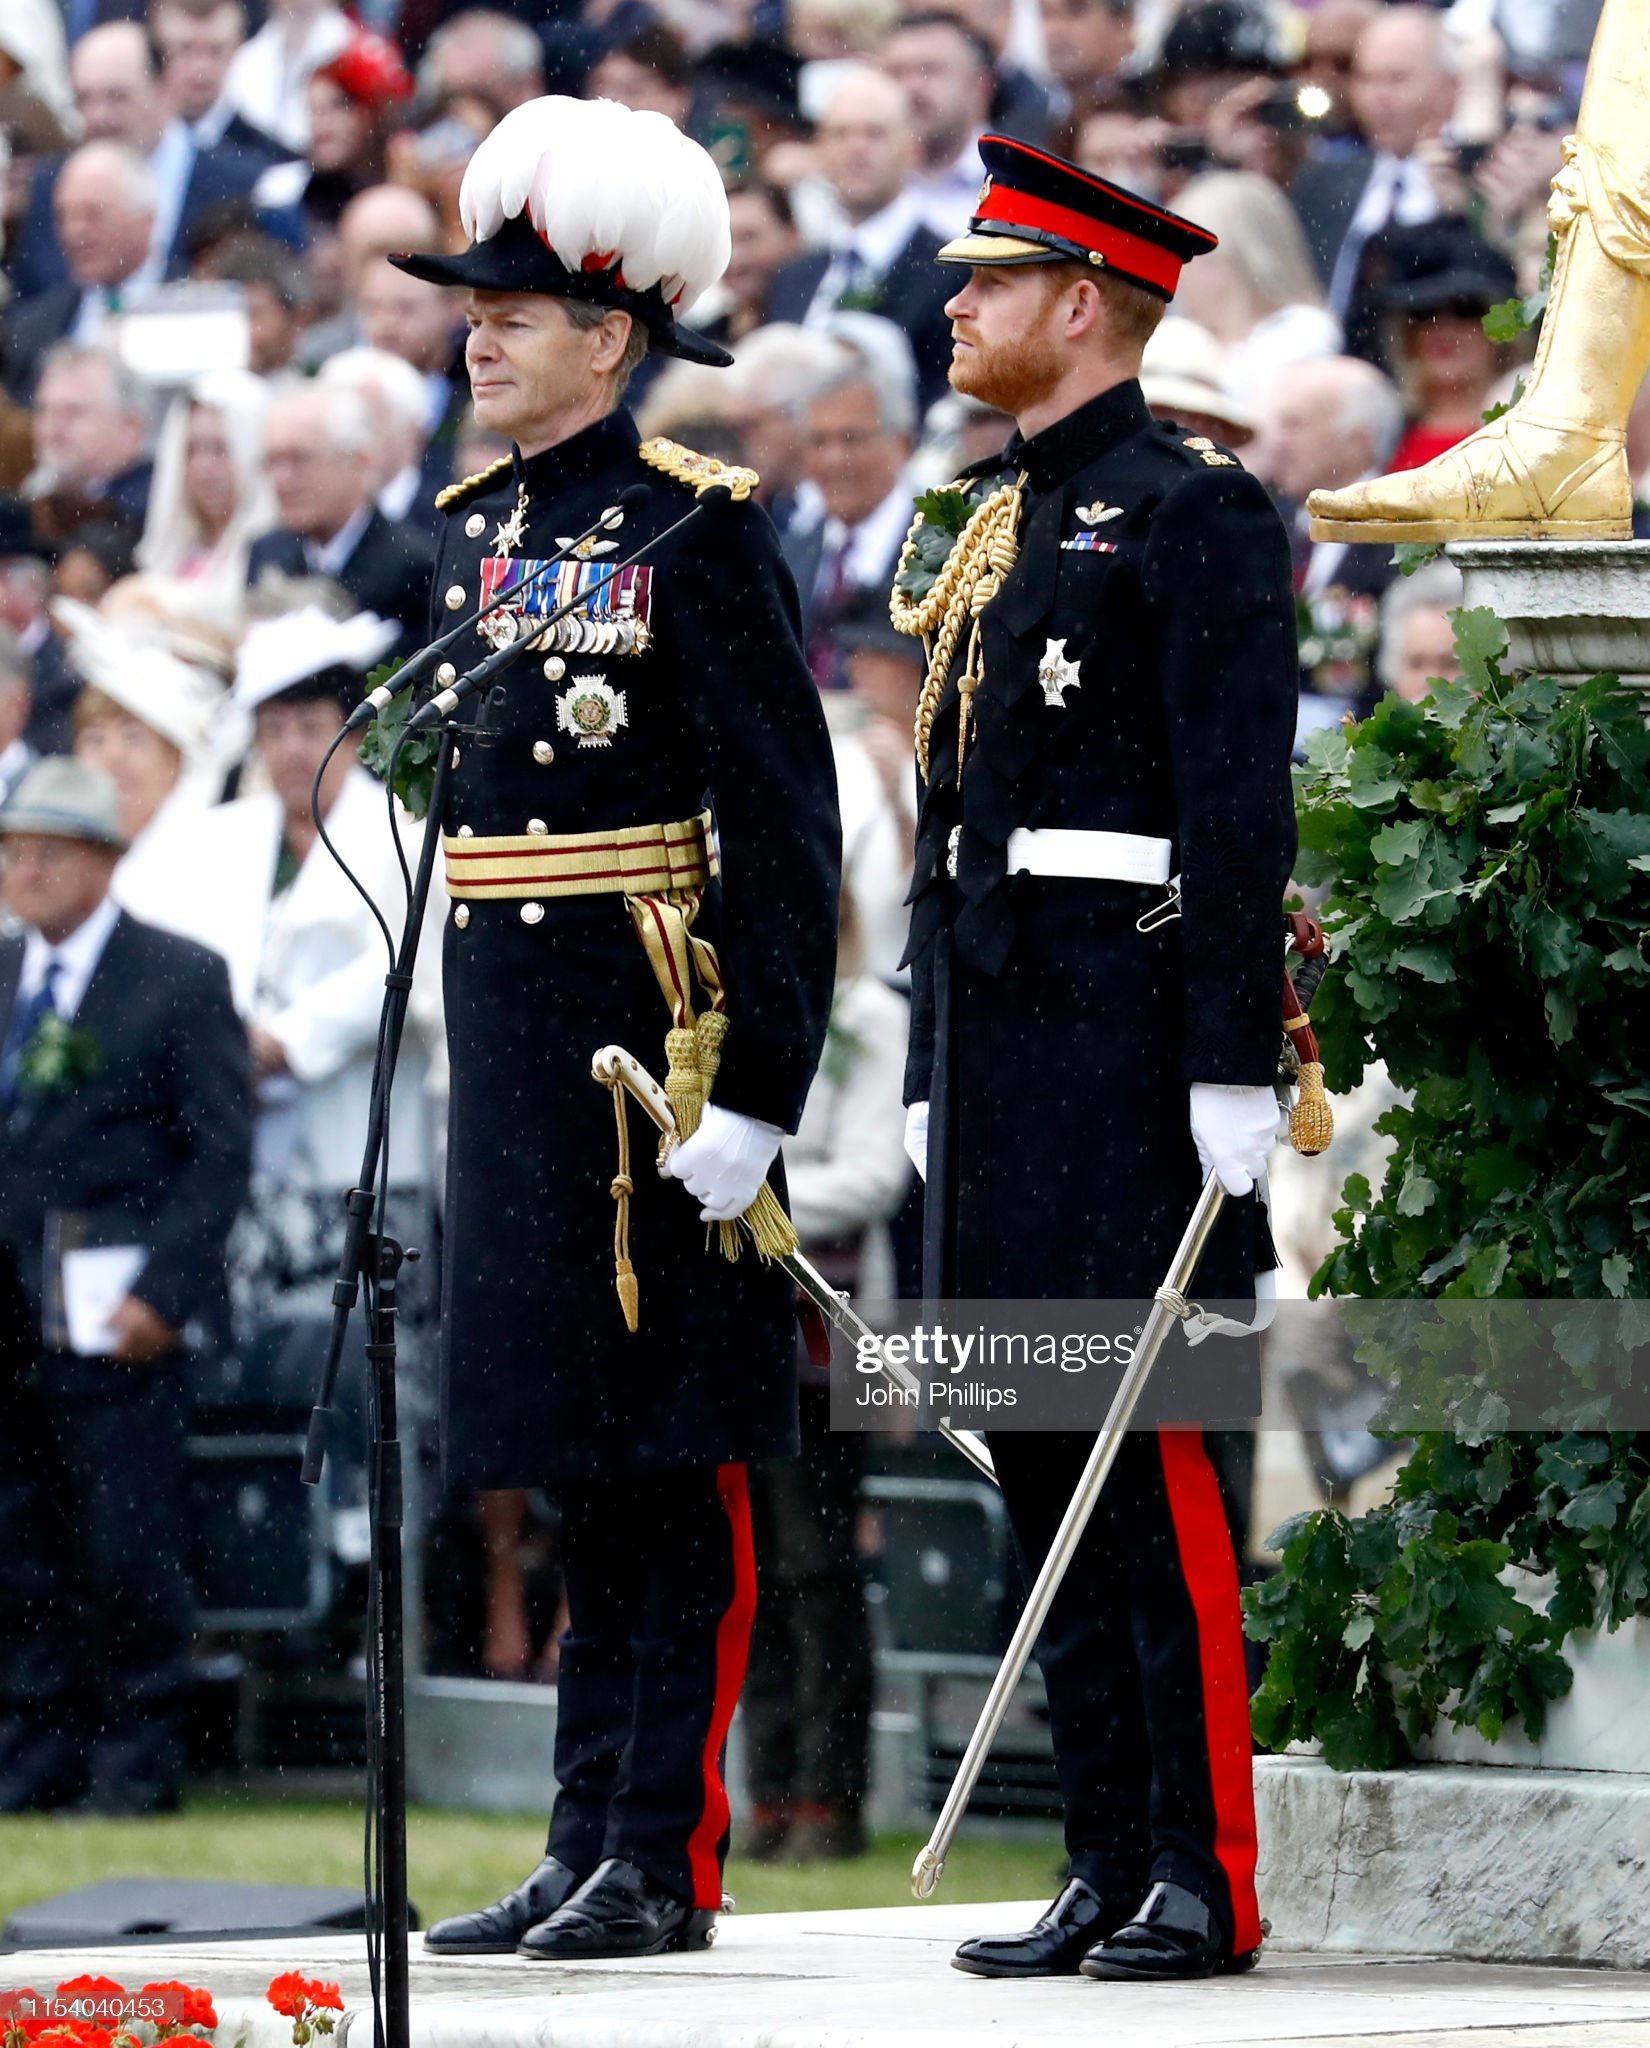 prince-harry-duke-of-sussex-attends-the-annual-founders-day-parade-at-picture-id1154040453